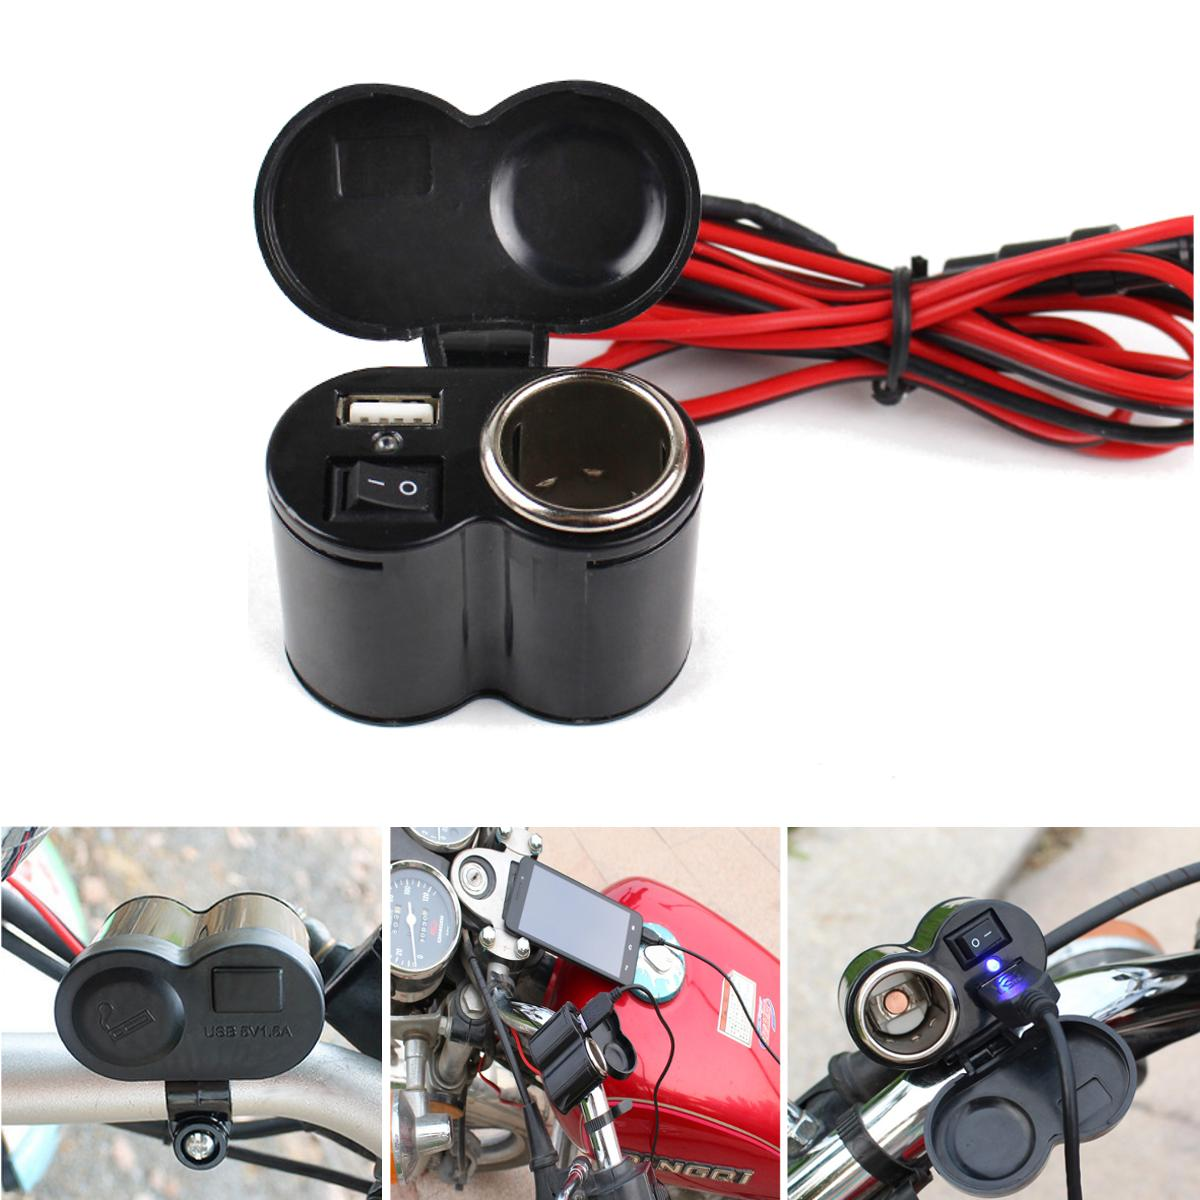 12V-24V Motorcycle E-bike USB Charger Cigarette Lighter